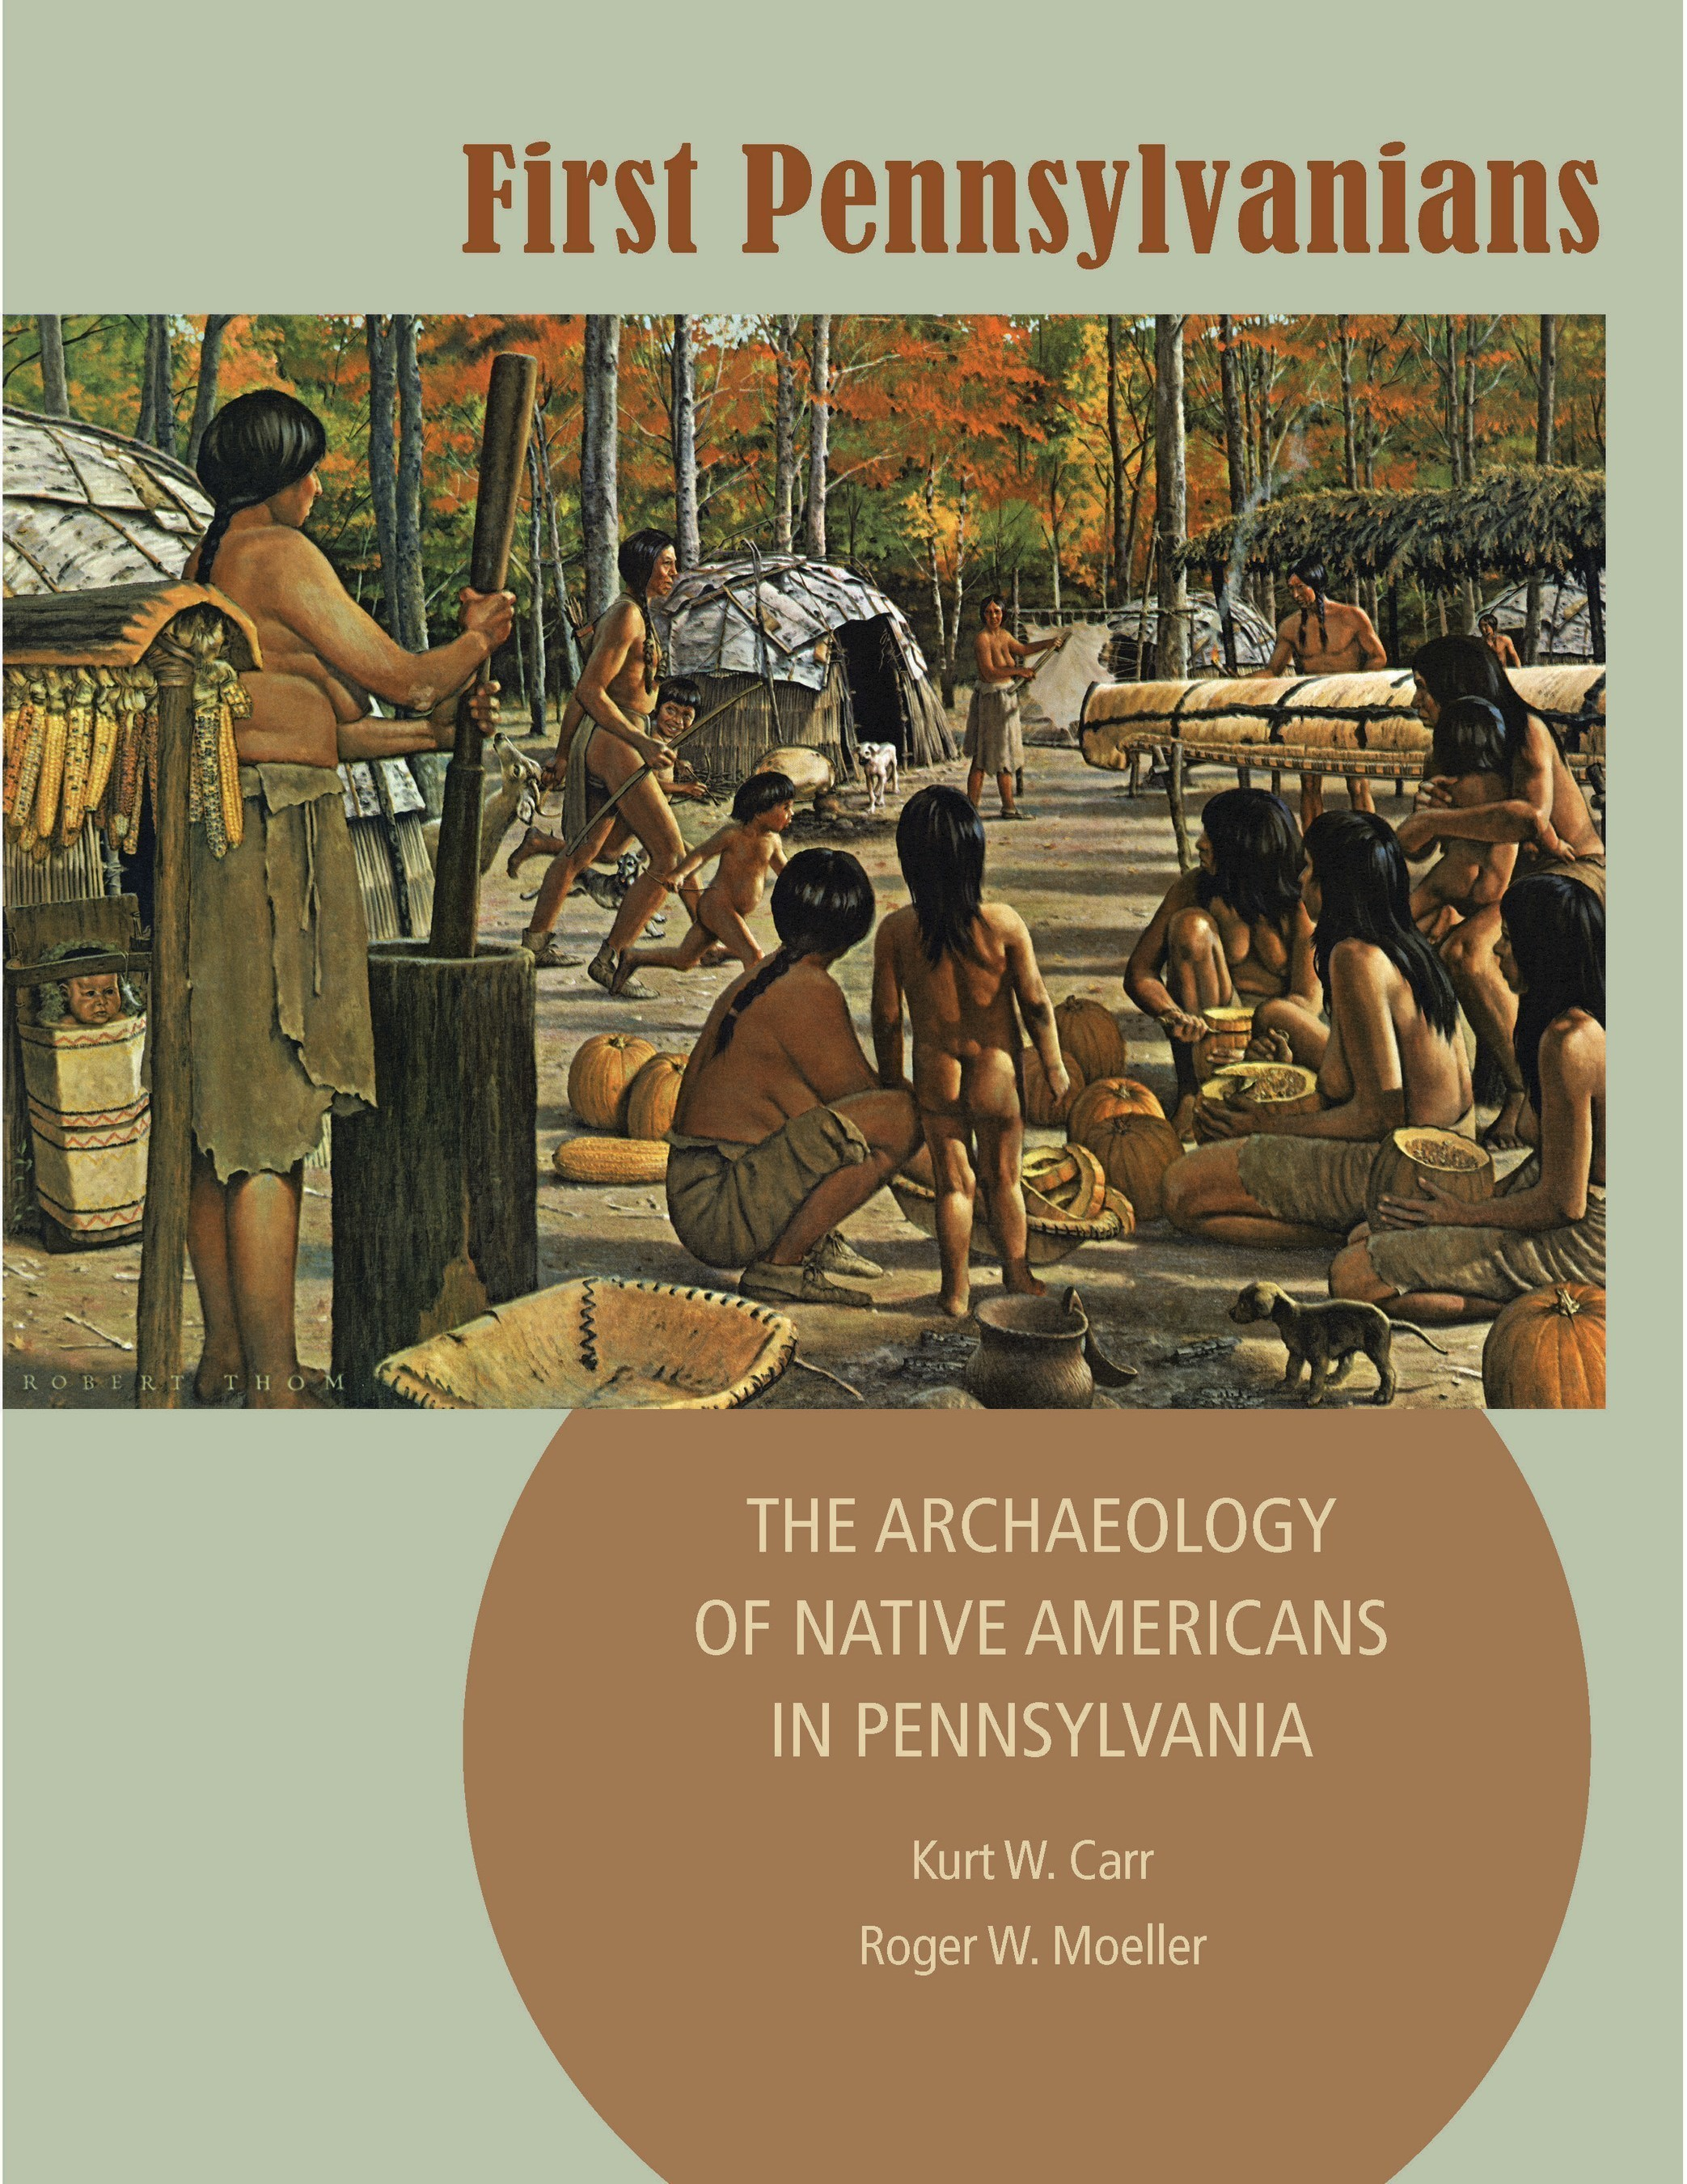 FIRST PENNSYLVANIANS: The Archaeology of Native Americans in Pennsylvania; Kurt W. Carr and Roger W. Moeller $29.95, PB, 8 1/2 x 11, 256 pages, 124 color photos and illustrations, 120 b/w line drawings, 19 maps, tables, 978-0-89271-150-5 Published by The Pennsylvania Historical and Museum Commission. Available now at ShopPAHeritage.com.